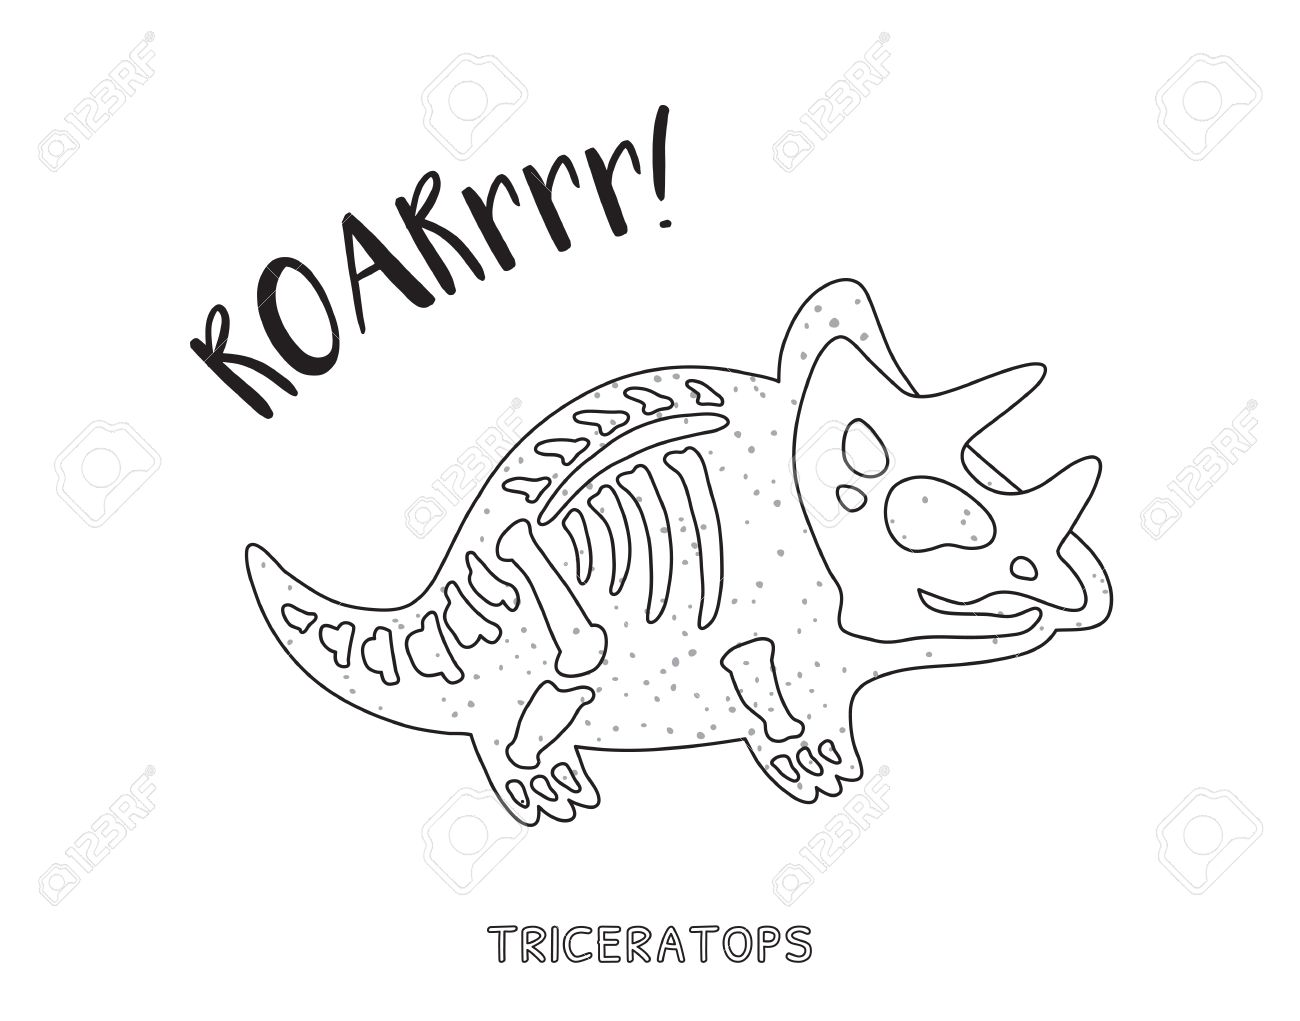 1300x1021 Triceratops Skeleton Outline Drawing. Fossil Of A Triceratops